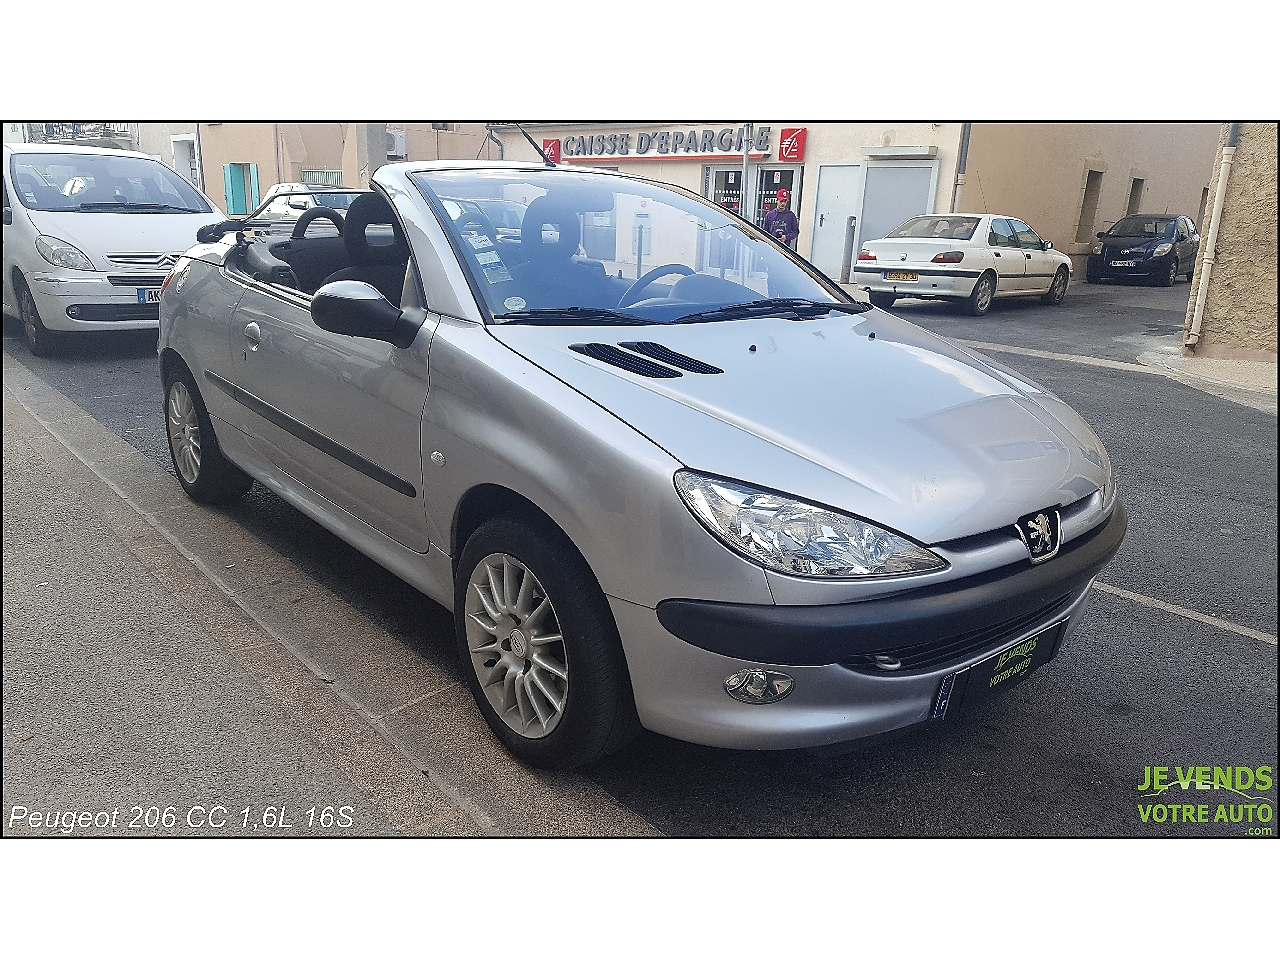 voiture peugeot 206 cc 1 6 16v 110ch 2001a occasion essence 2001 106000 km 3590. Black Bedroom Furniture Sets. Home Design Ideas